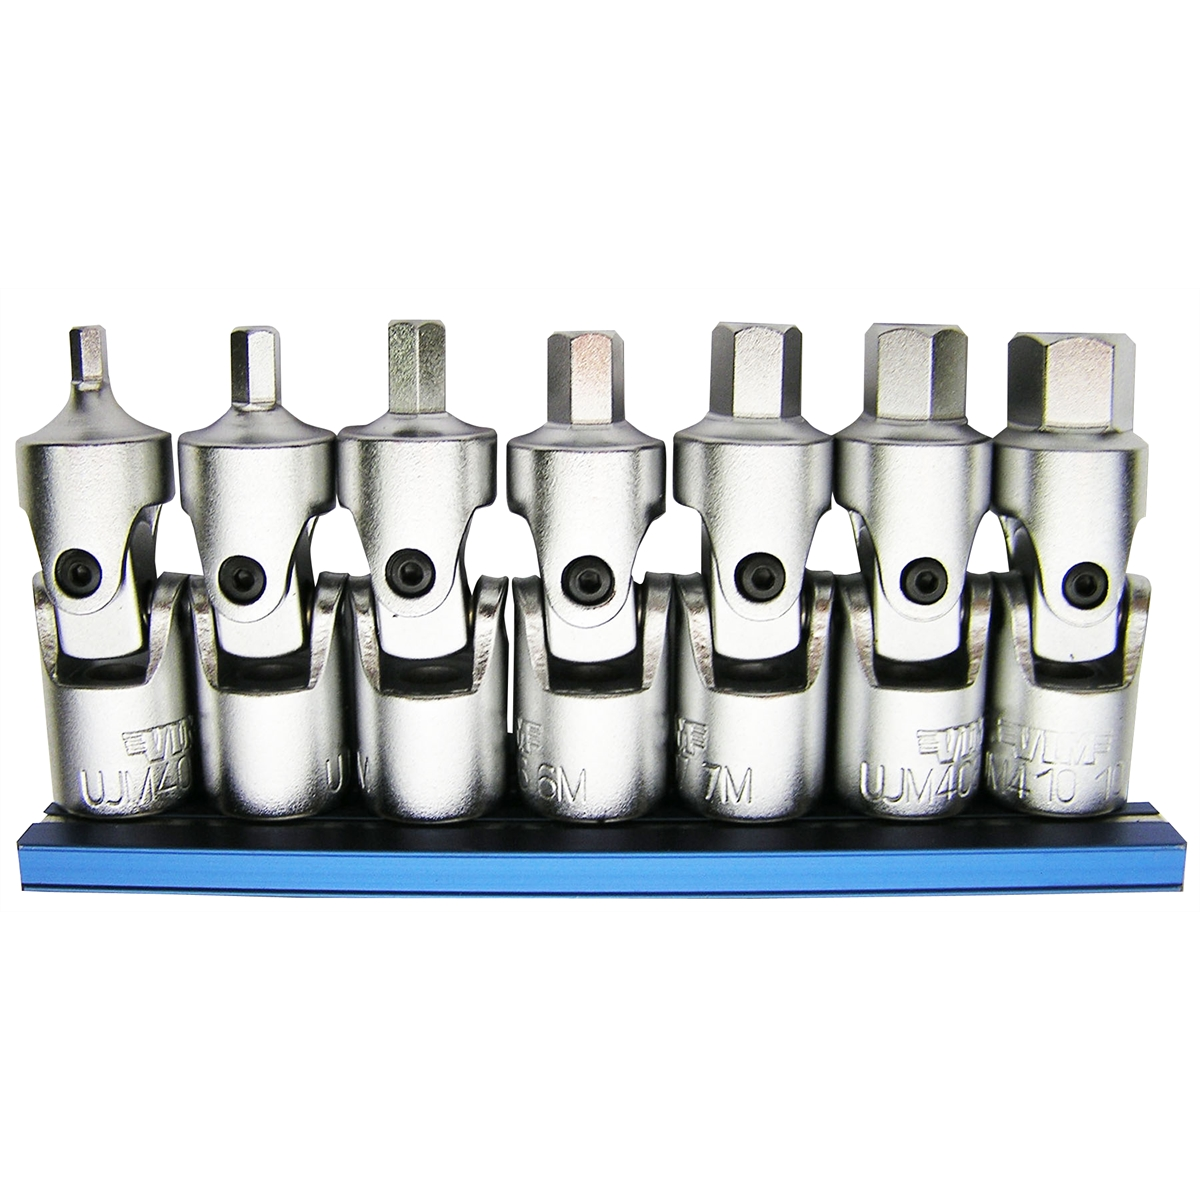 7Pc. Universal Joint Metric Hex Dr. Set 3mm-10mm